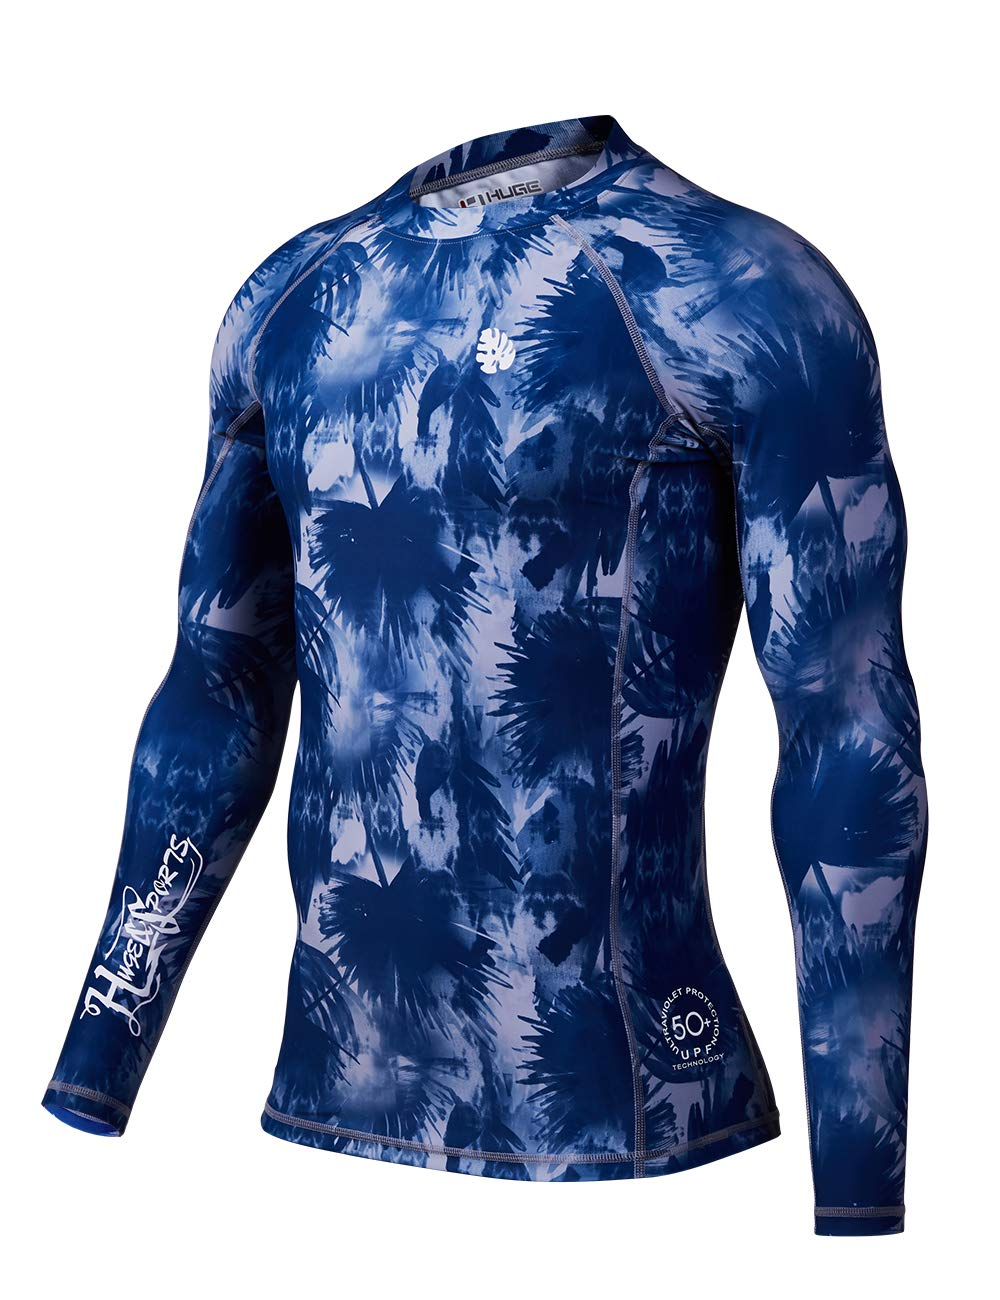 HUGE SPORTS Men's Splice UV Sun Protection UPF 50+ Skins Rash Guard Long Sleeves ... by HUGE SPORTS